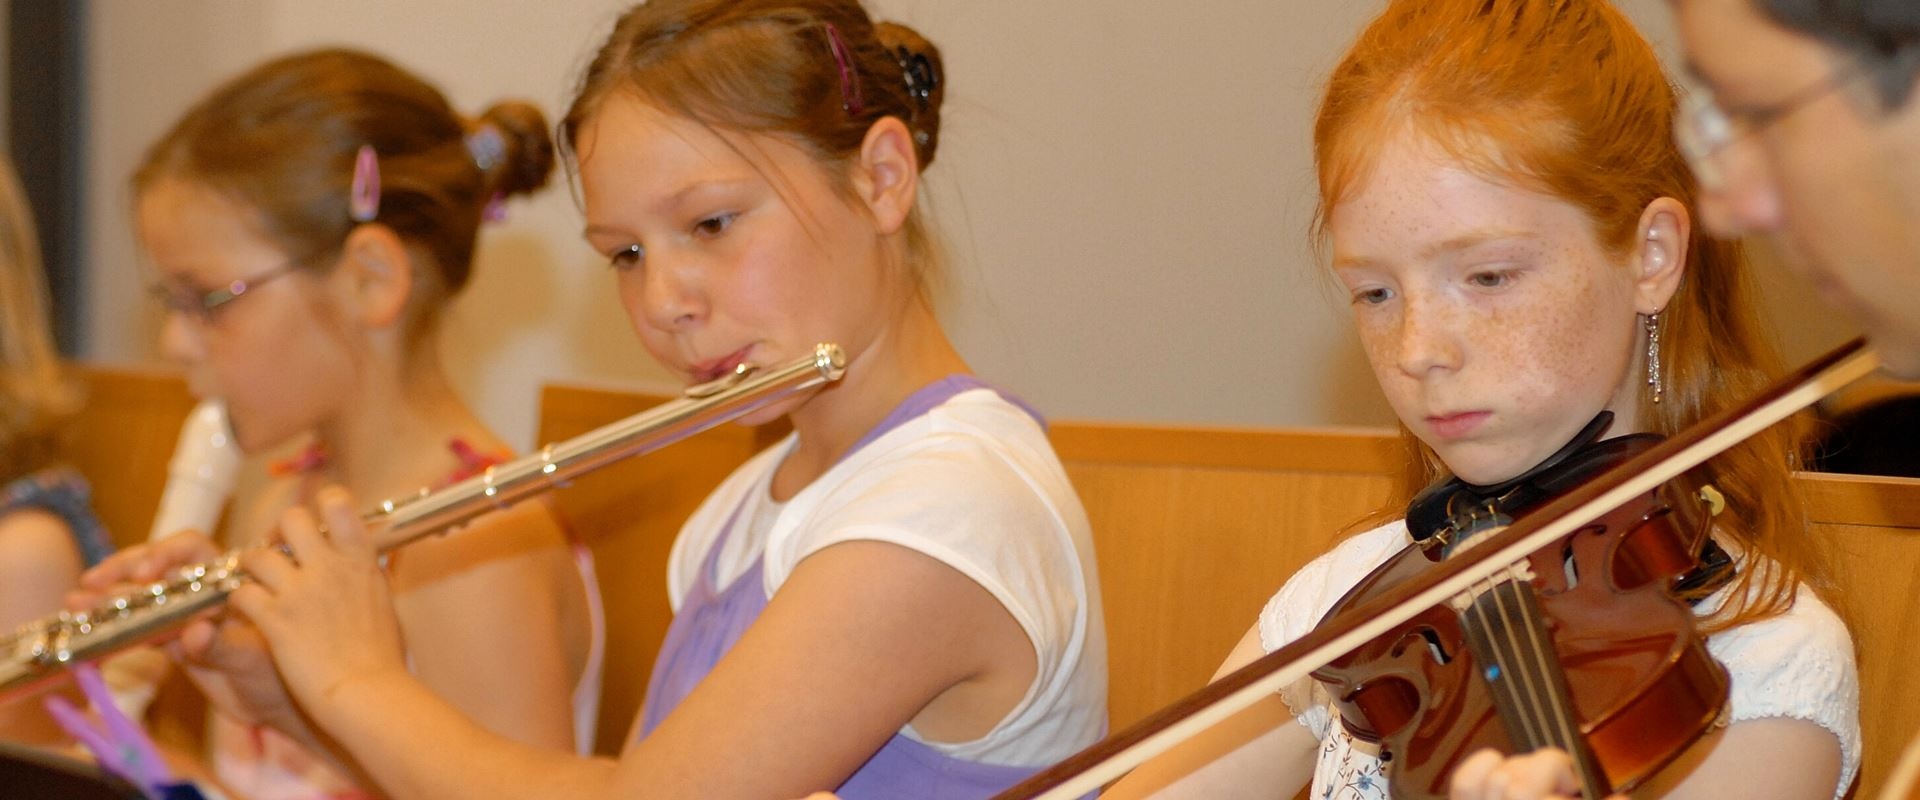 Violin and transverse flute lessons in the music school Bertheau & Morgenstern